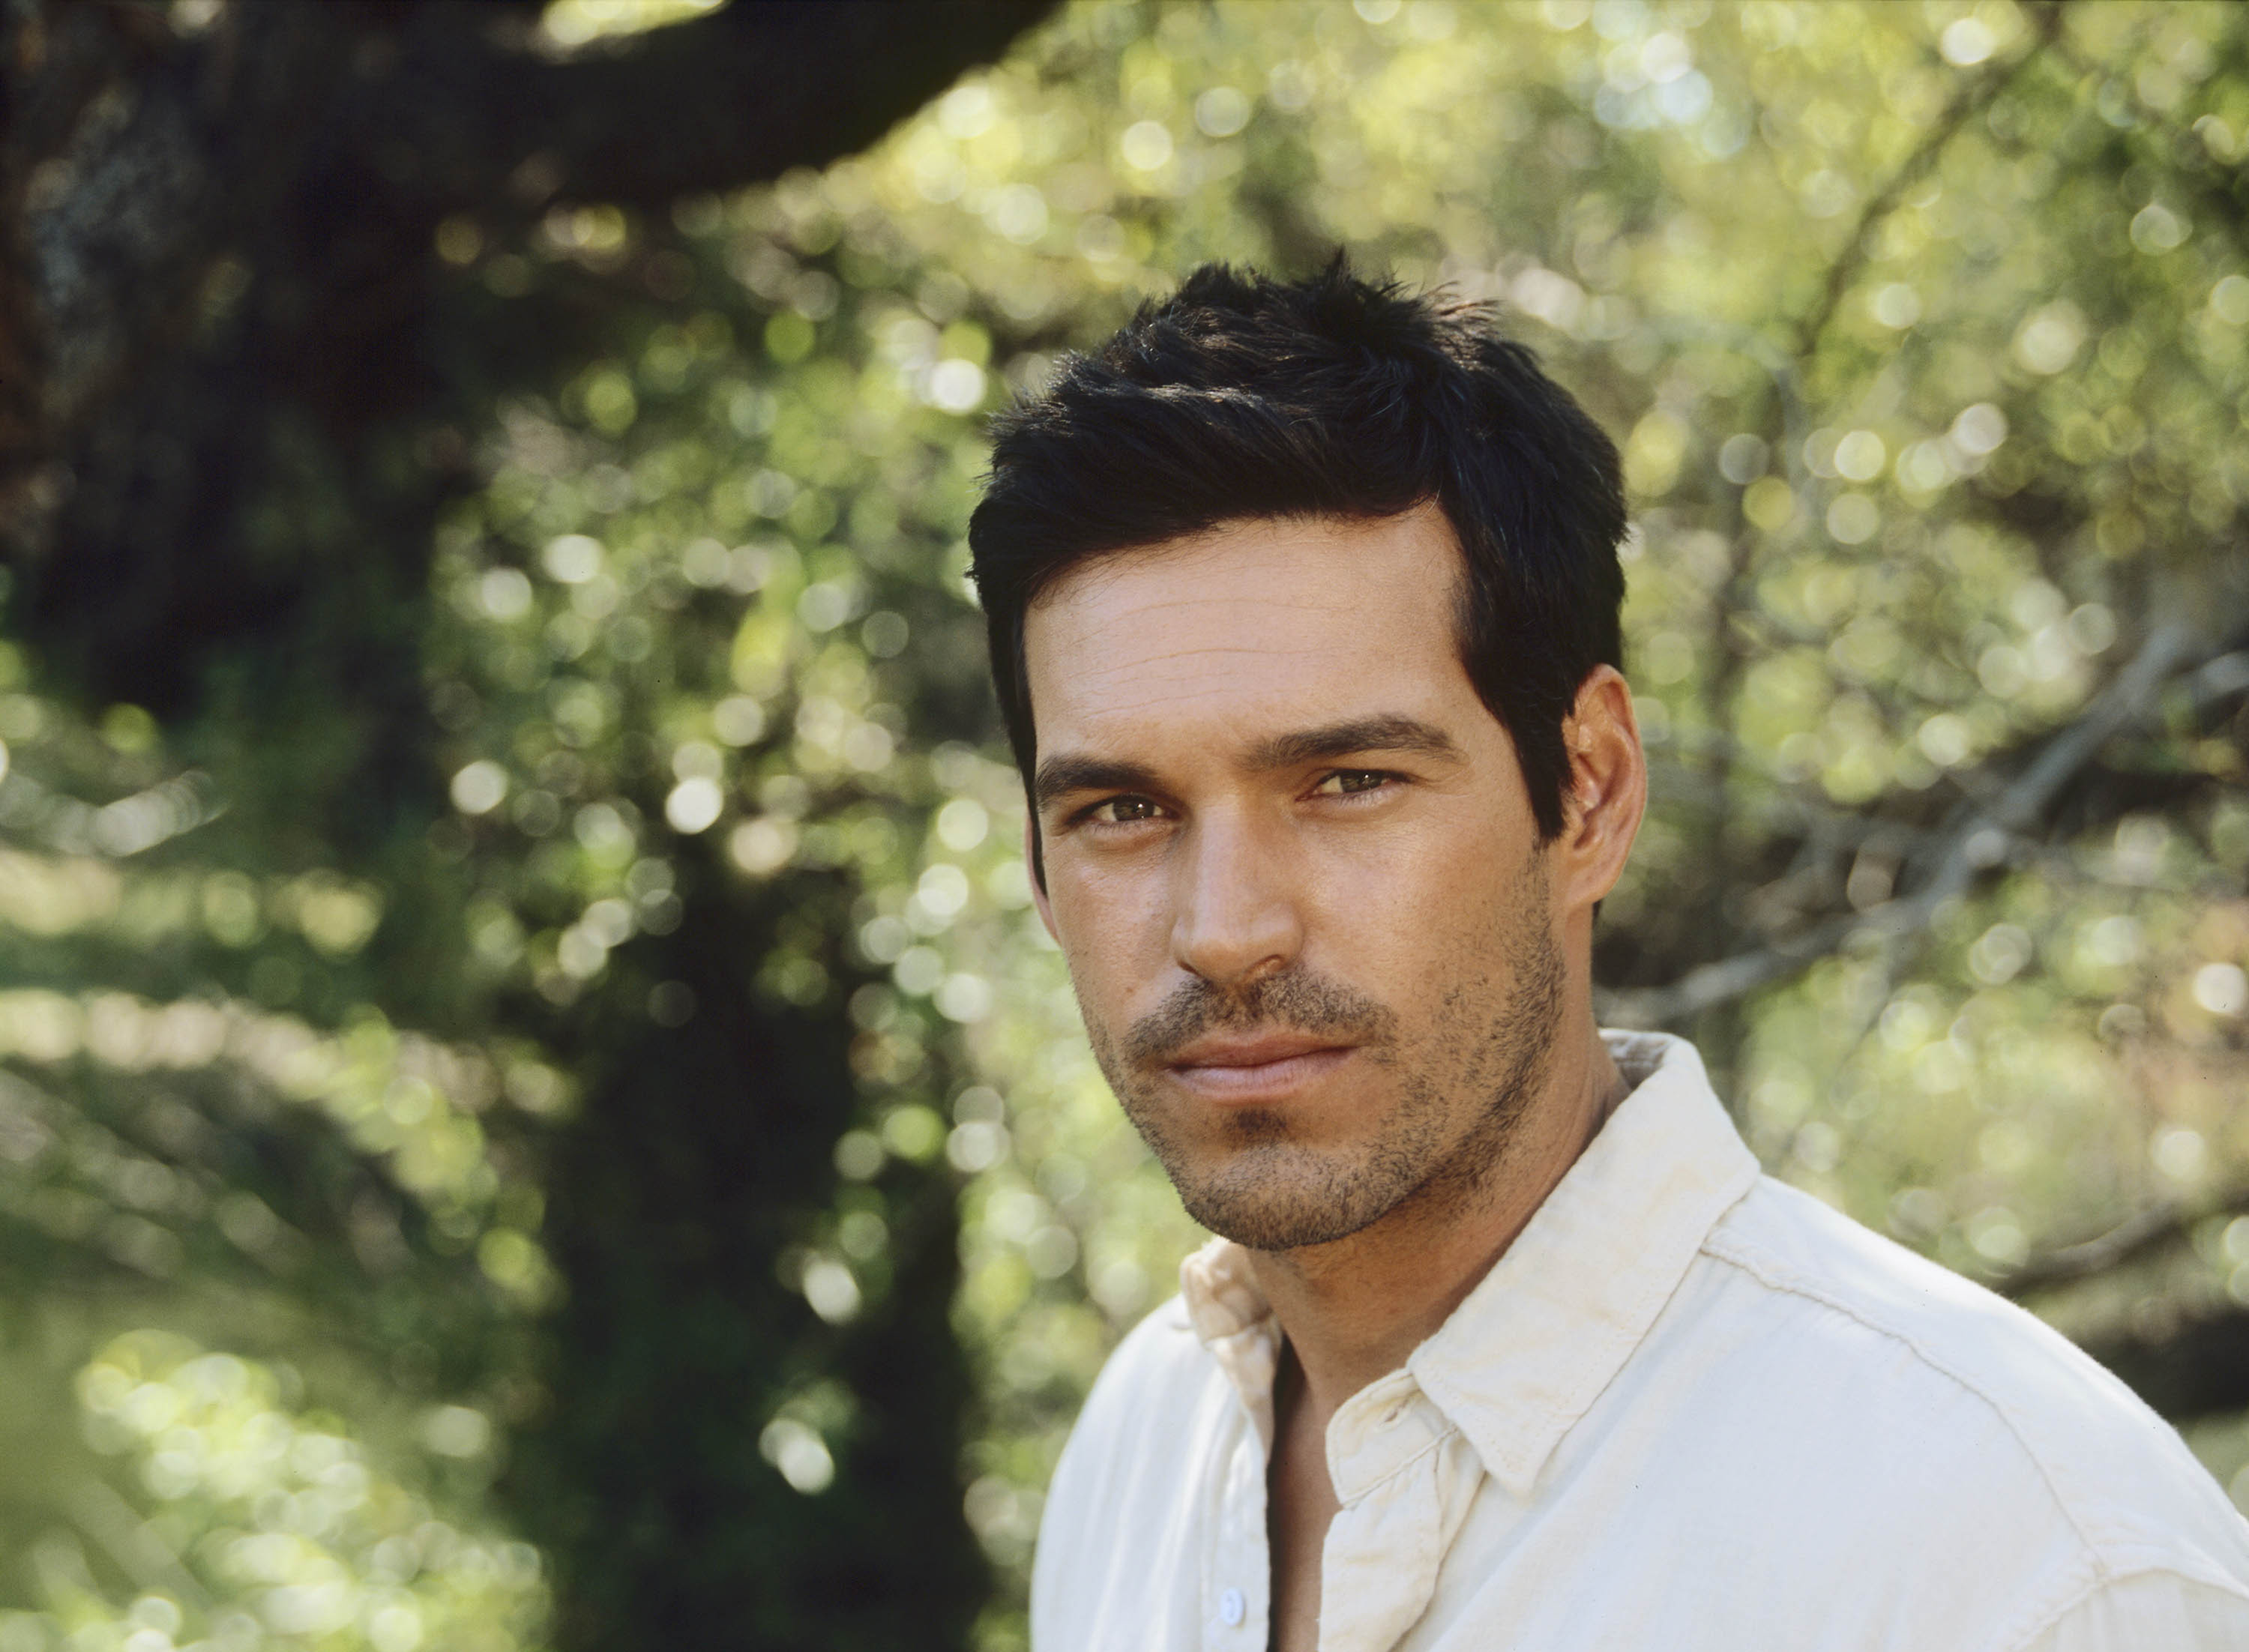 Eddie Cibrian Wallpapers Images Photos Pictures Backgrounds 3000x2204